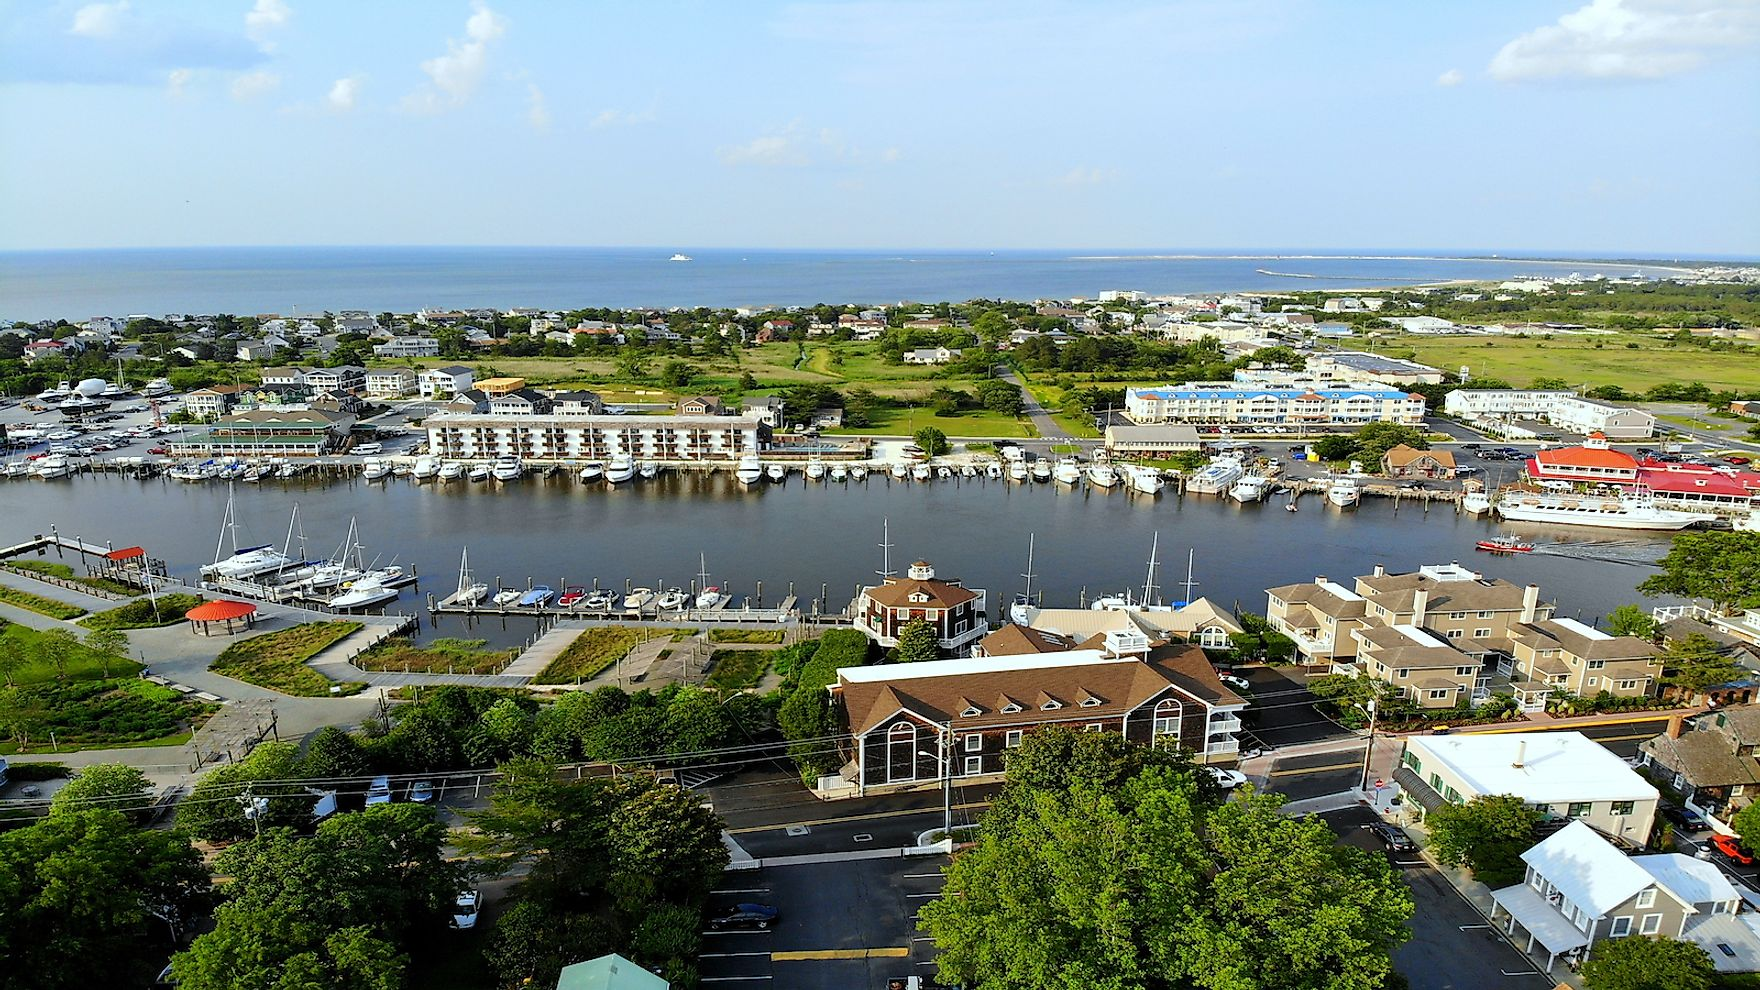 Aerial view of a fishing port in Delaware. Fishing is a very important industry in the state.